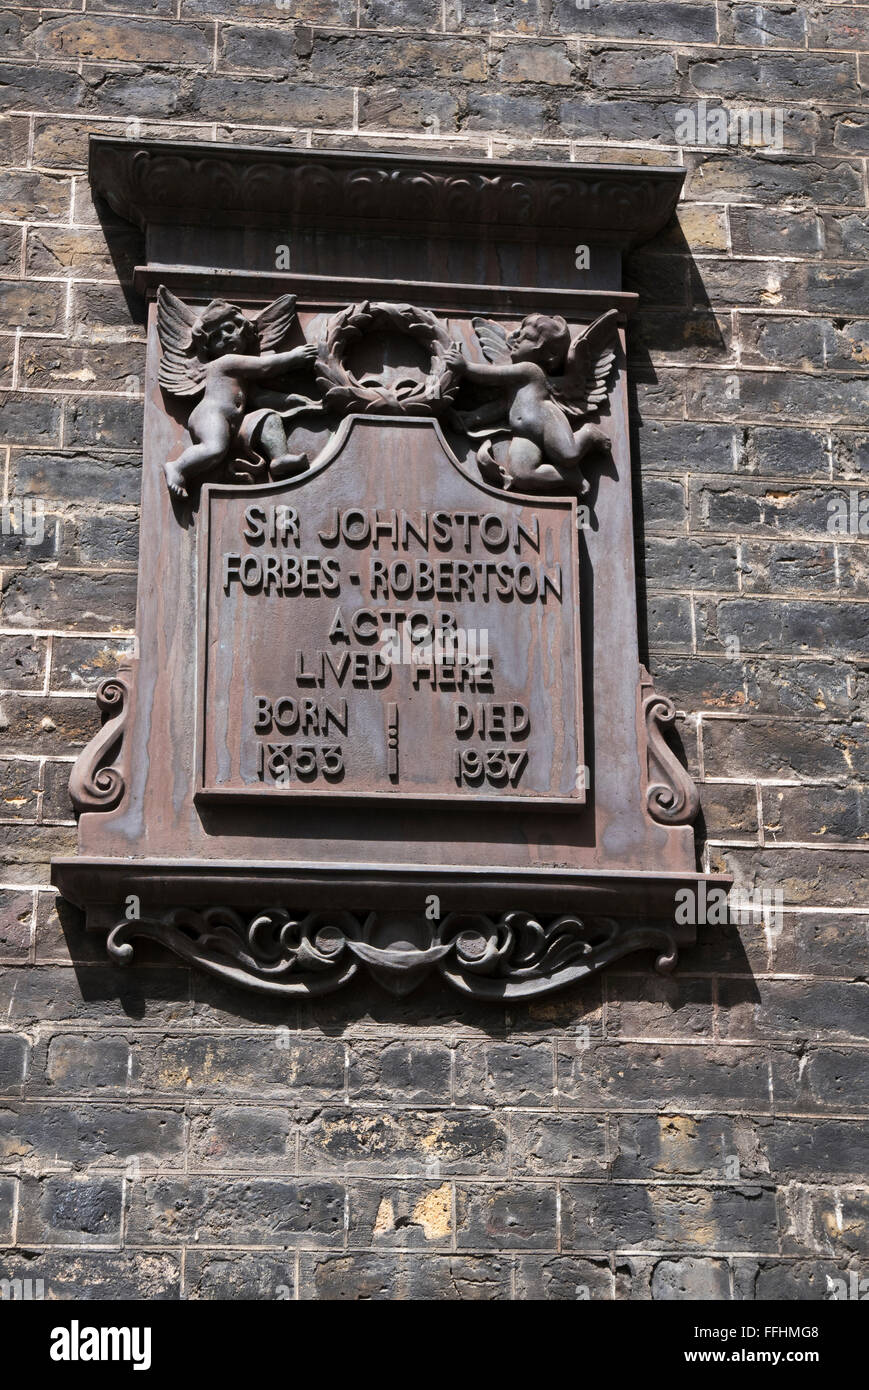 A commemorative plaque for British actor Johnston Forbes-Robertson, London, United Kingdom. - Stock Image